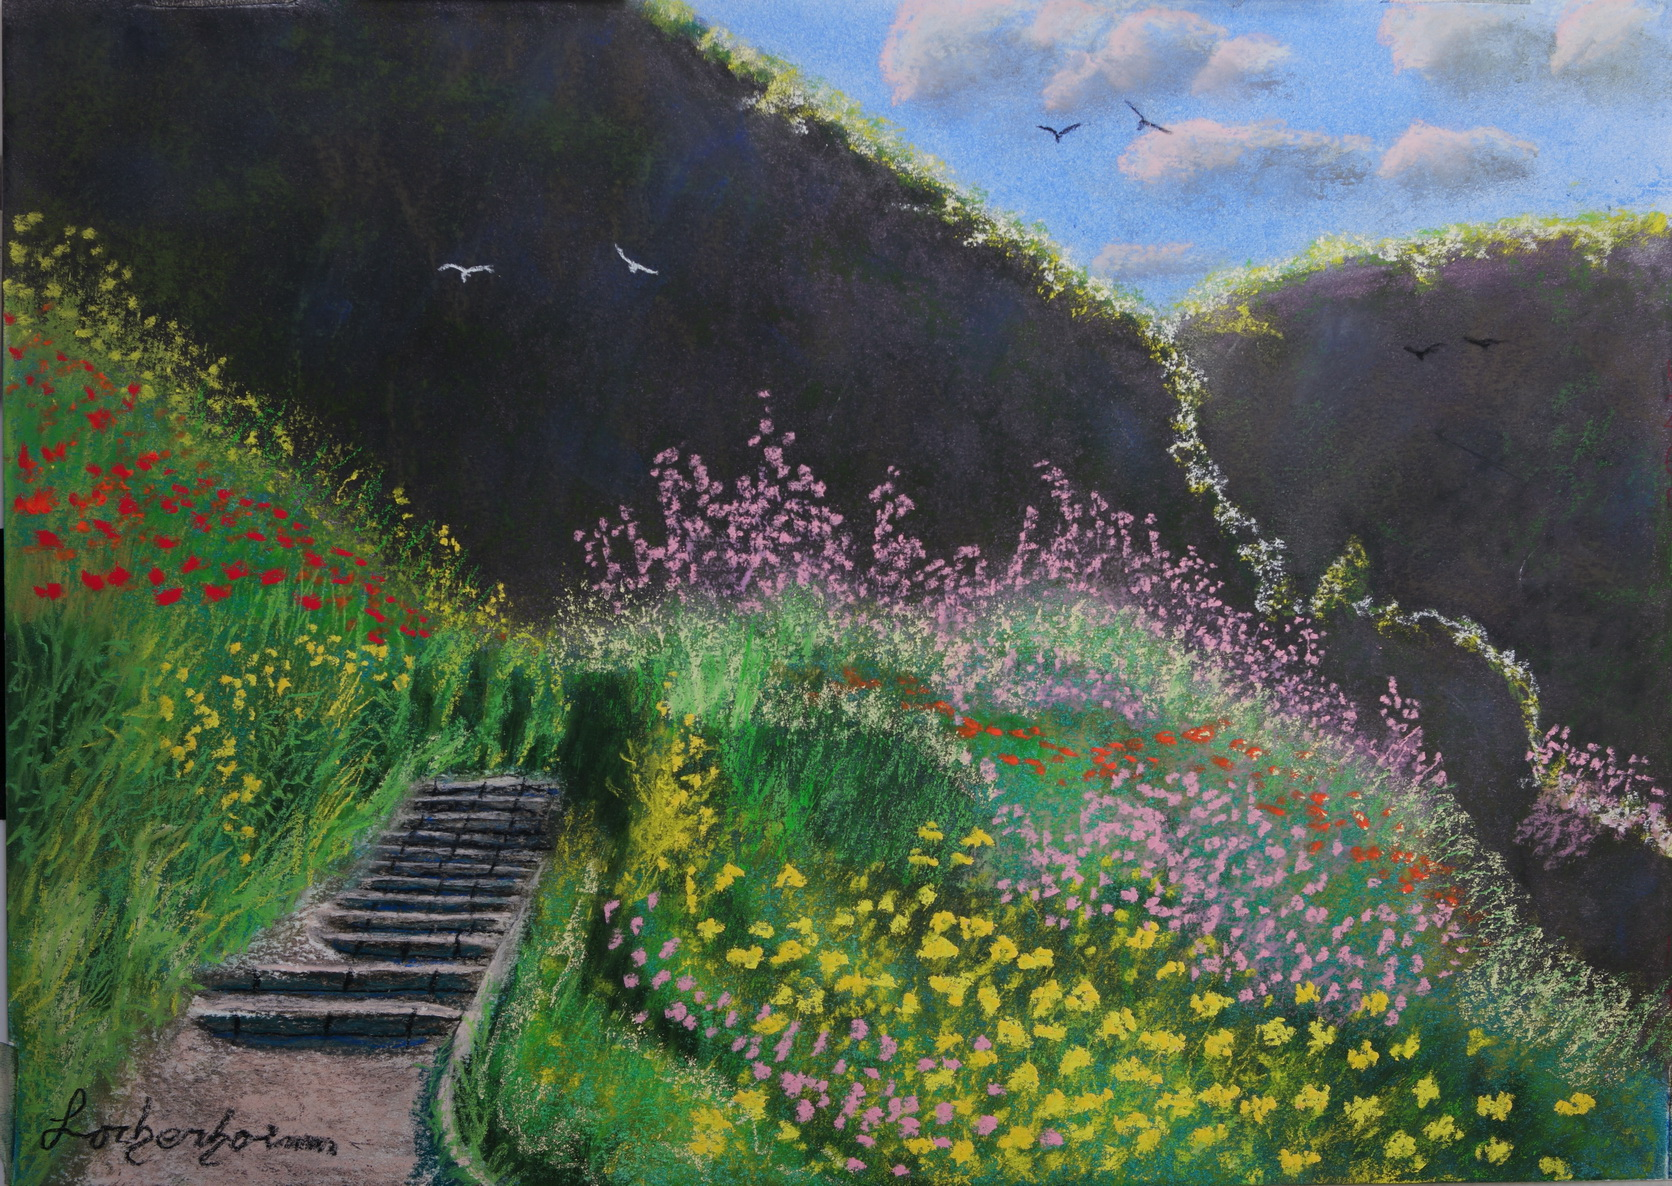 Nahal Ayun Morning light. lorberboim Soft Pastels Painting.